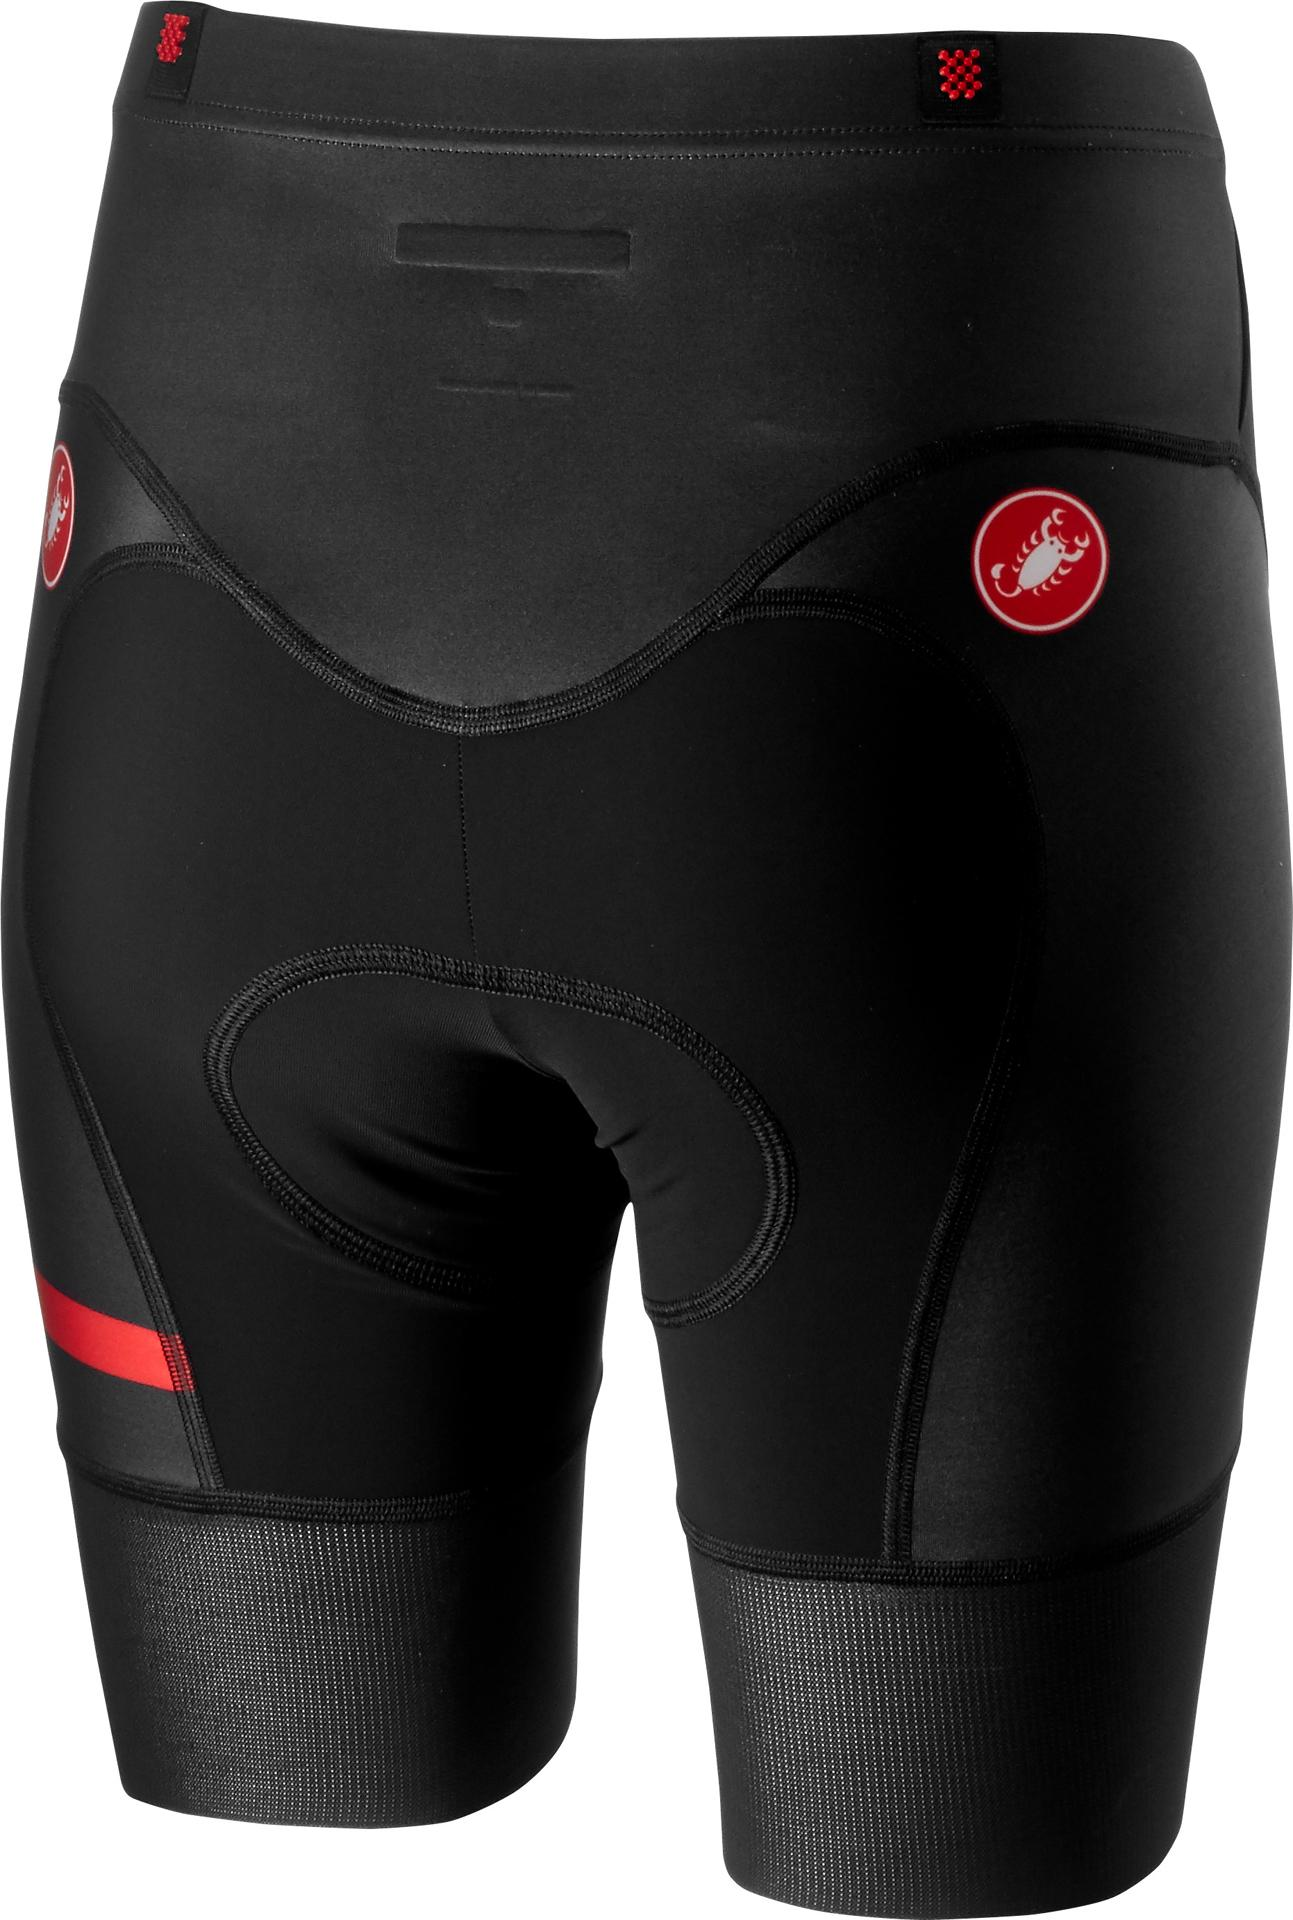 Castelli Triathlon broek Heren Zwart  - CA Free W Tri Short-Black